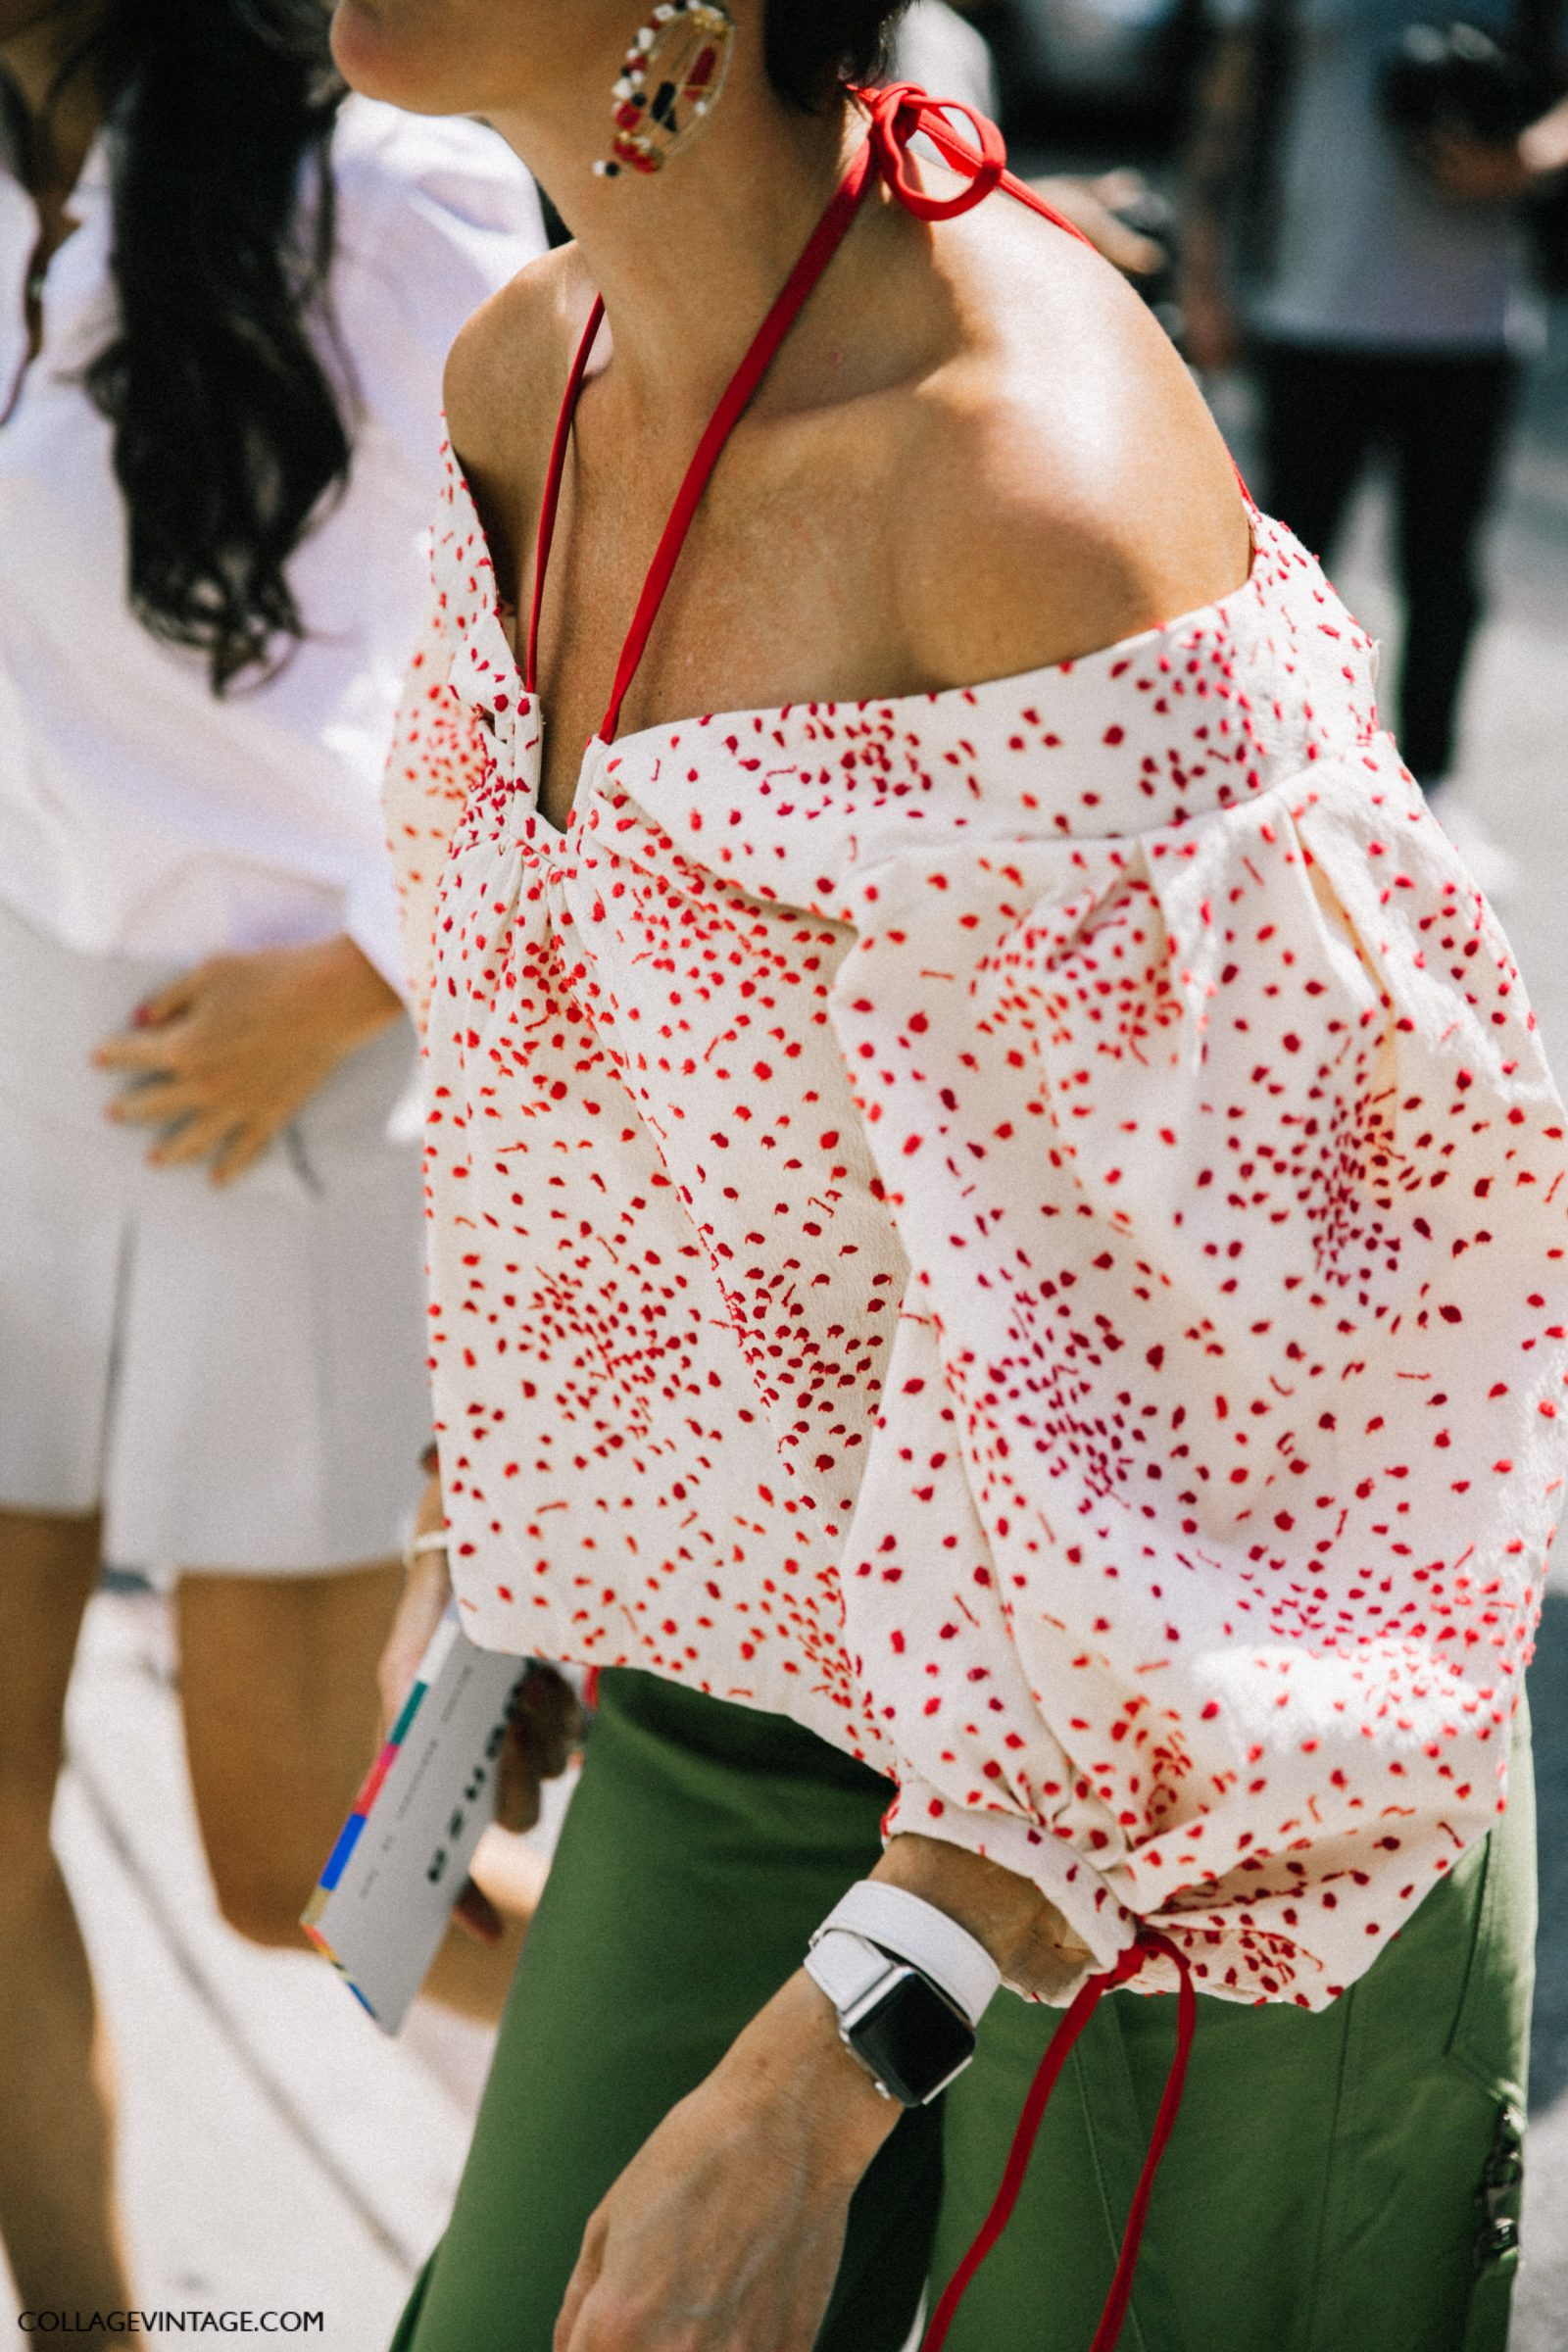 nyfw-new_york_fashion_week_ss17-street_style-outfits-collage_vintage-vintage-phillip_lim-the-row-proenza_schouler-rossie_aussolin-234